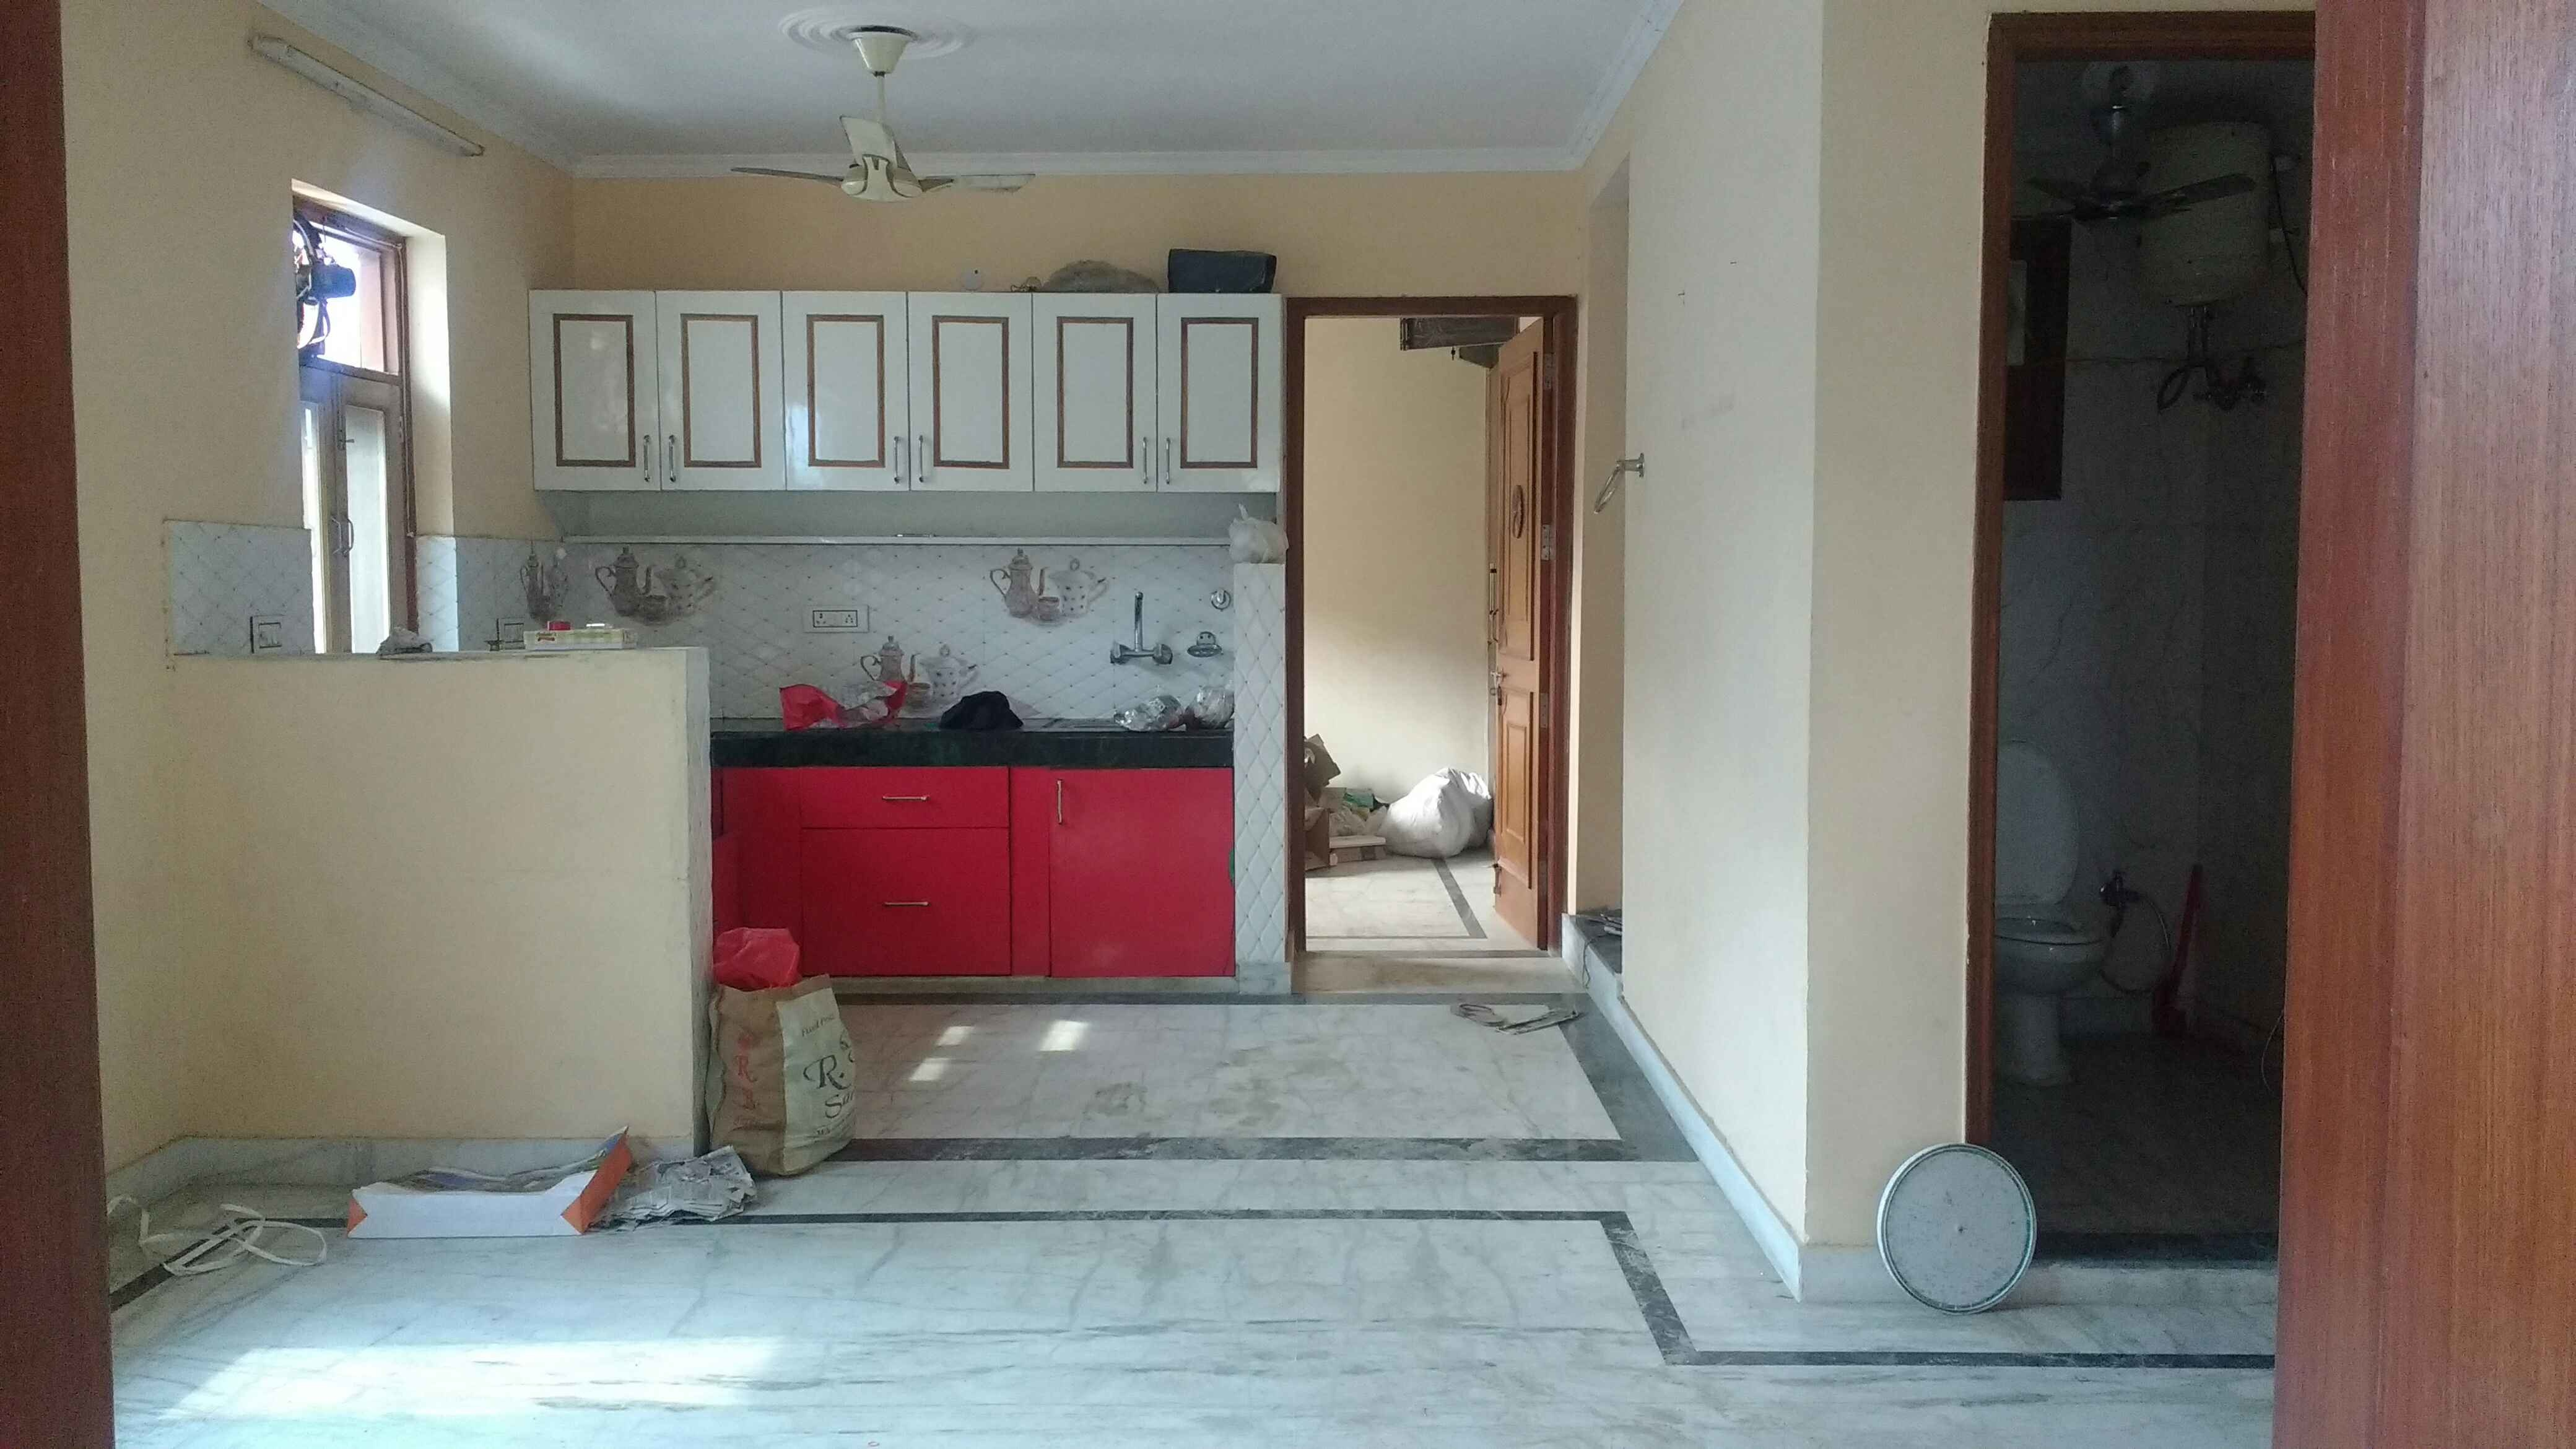 900 sq ft 2BHK 2BHK+2T (900 sq ft) Property By Daksh Property In Project, Chattarpur Enclave Phase 2